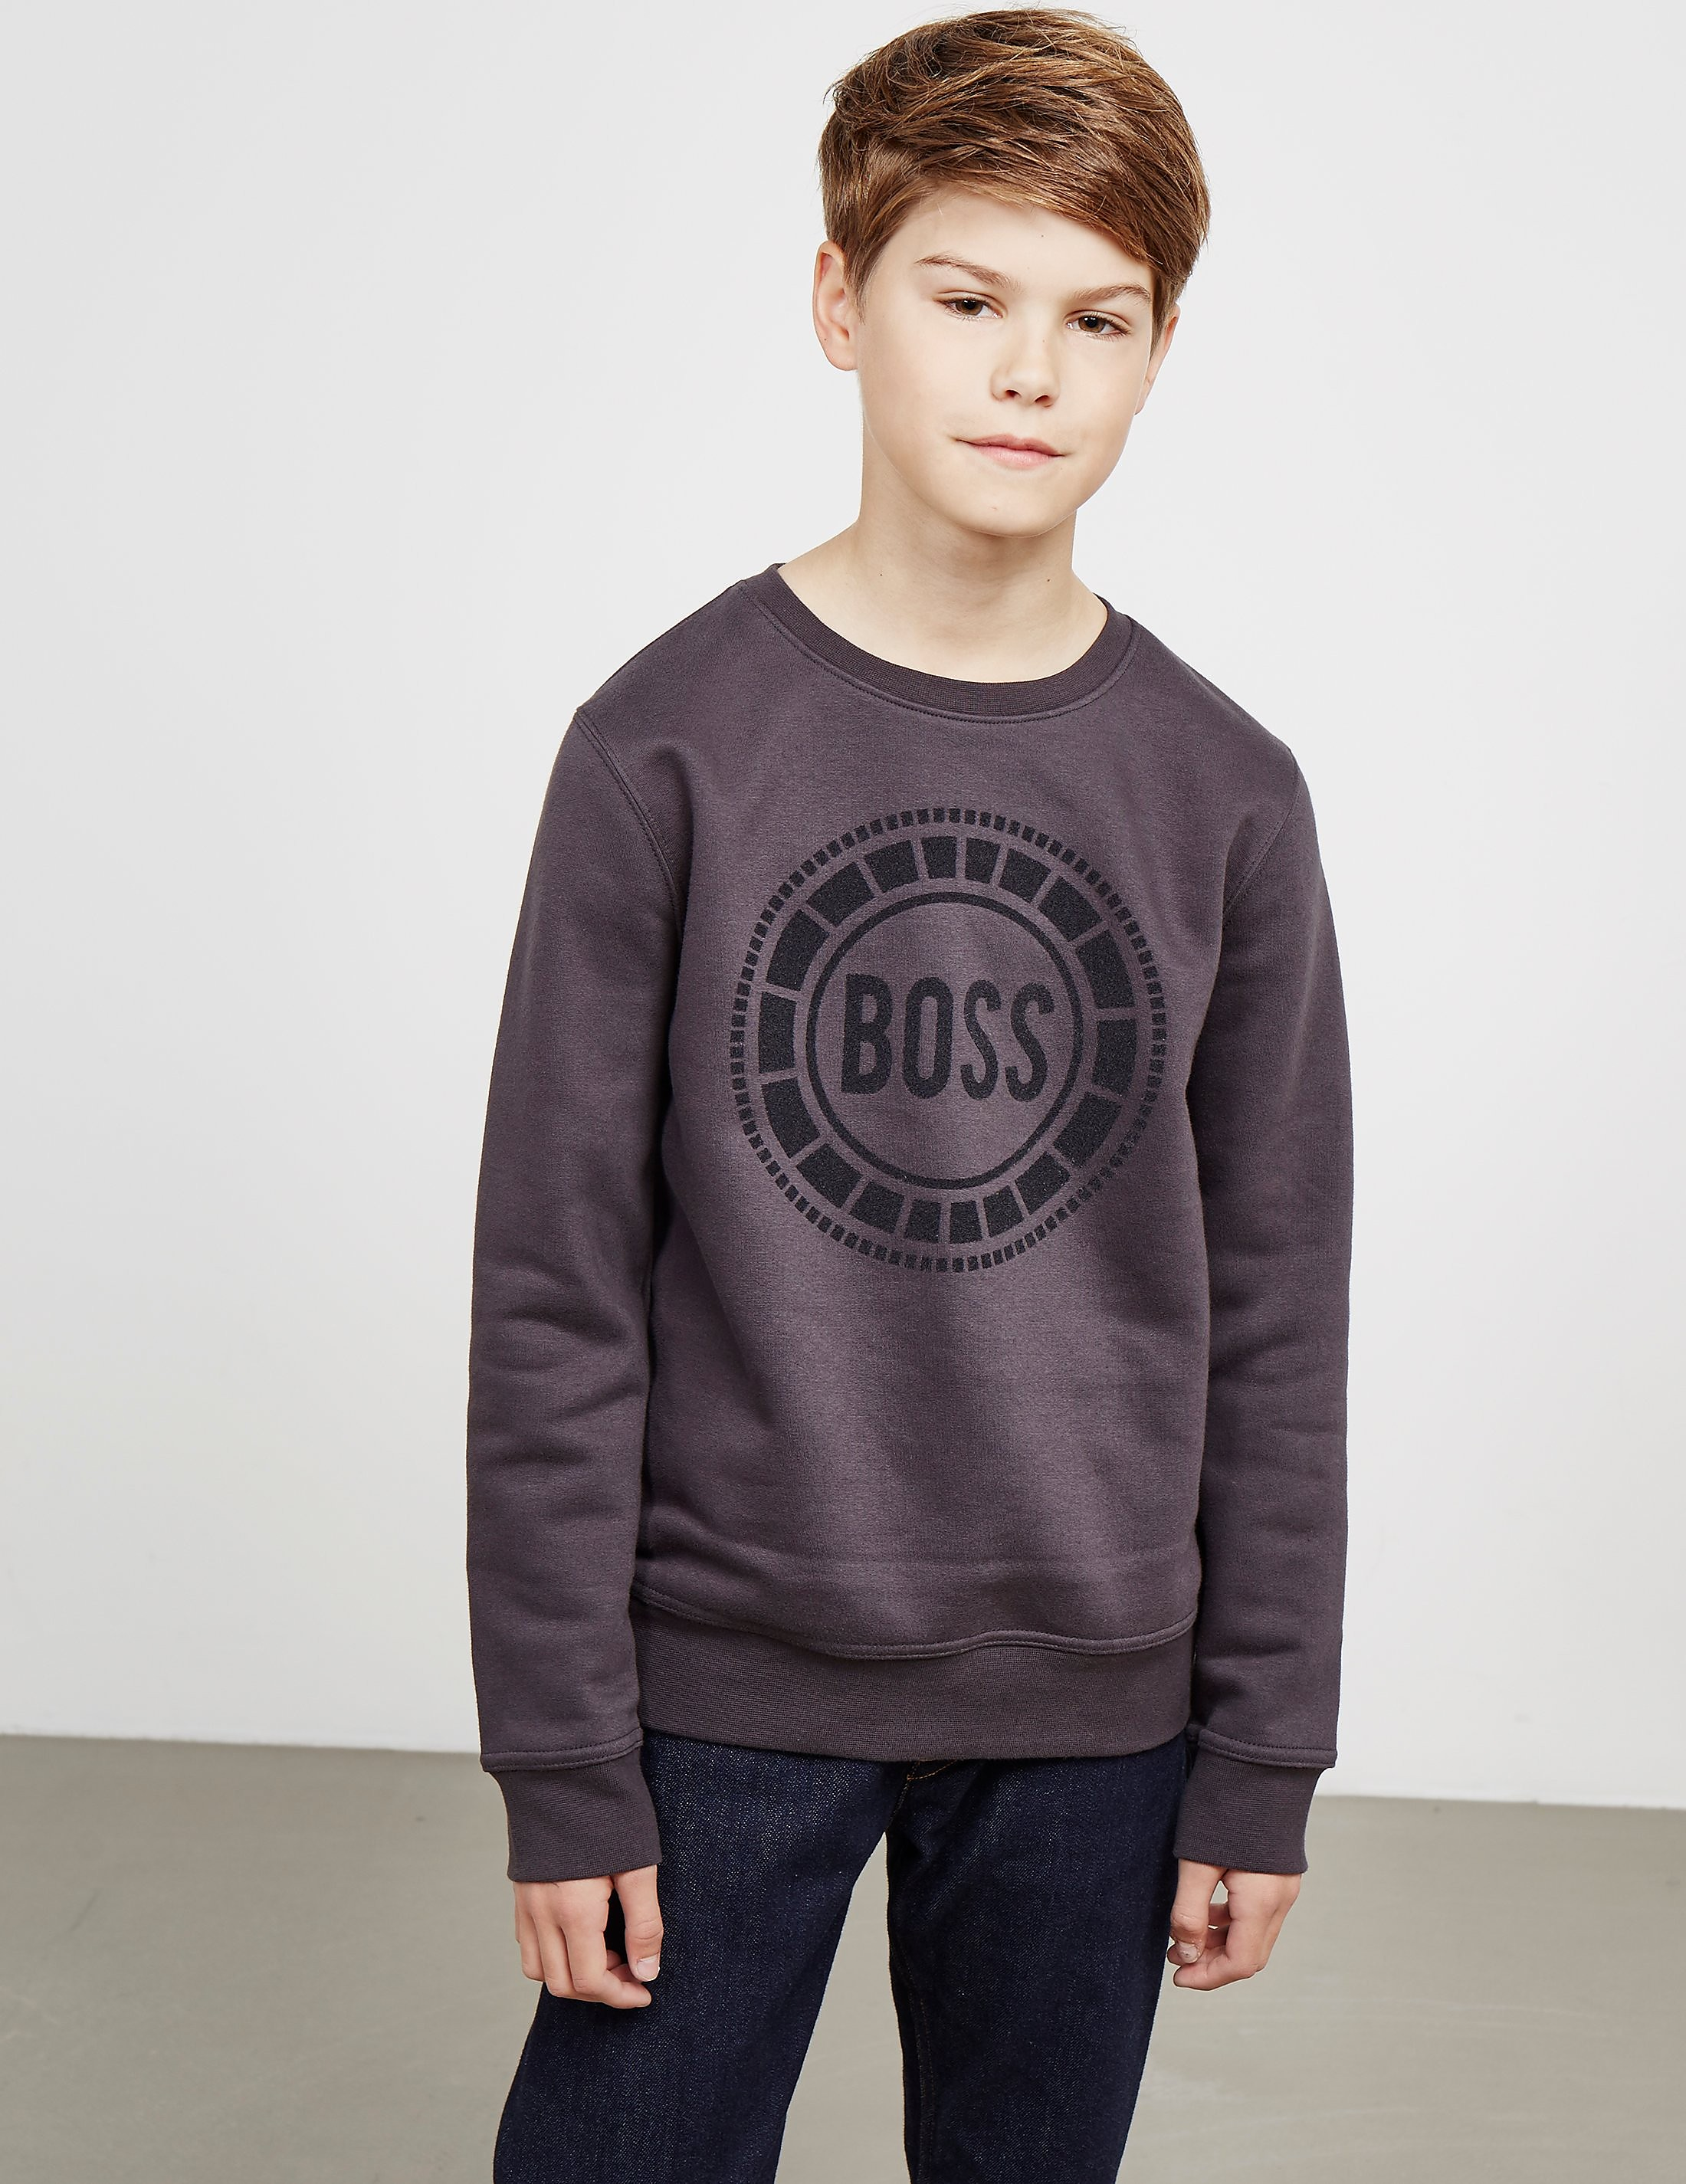 BOSS Logo Sweatshirt